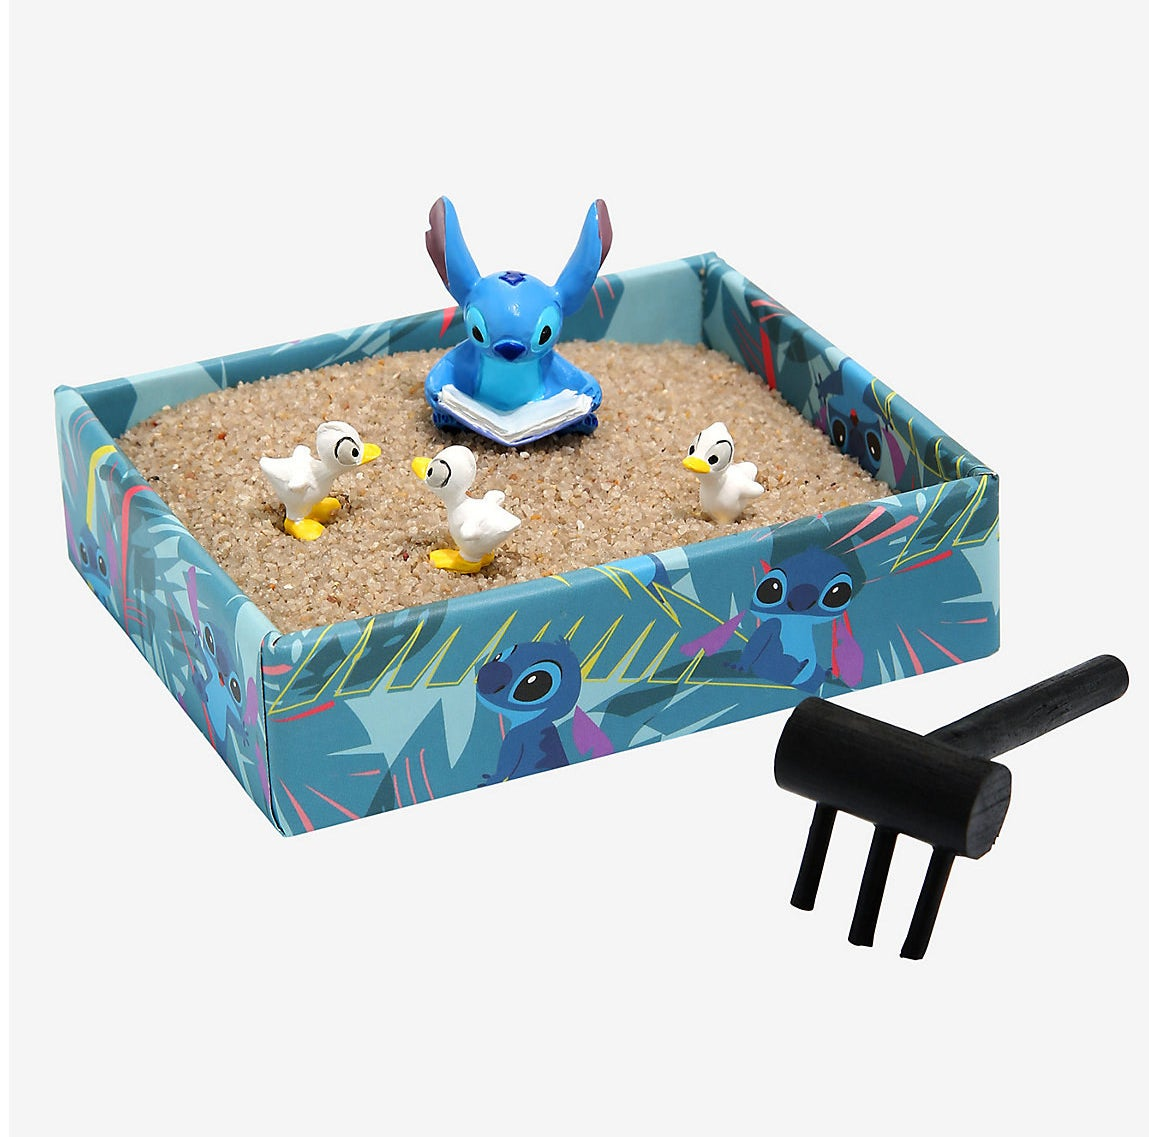 a sand box with stitch in it with ducks